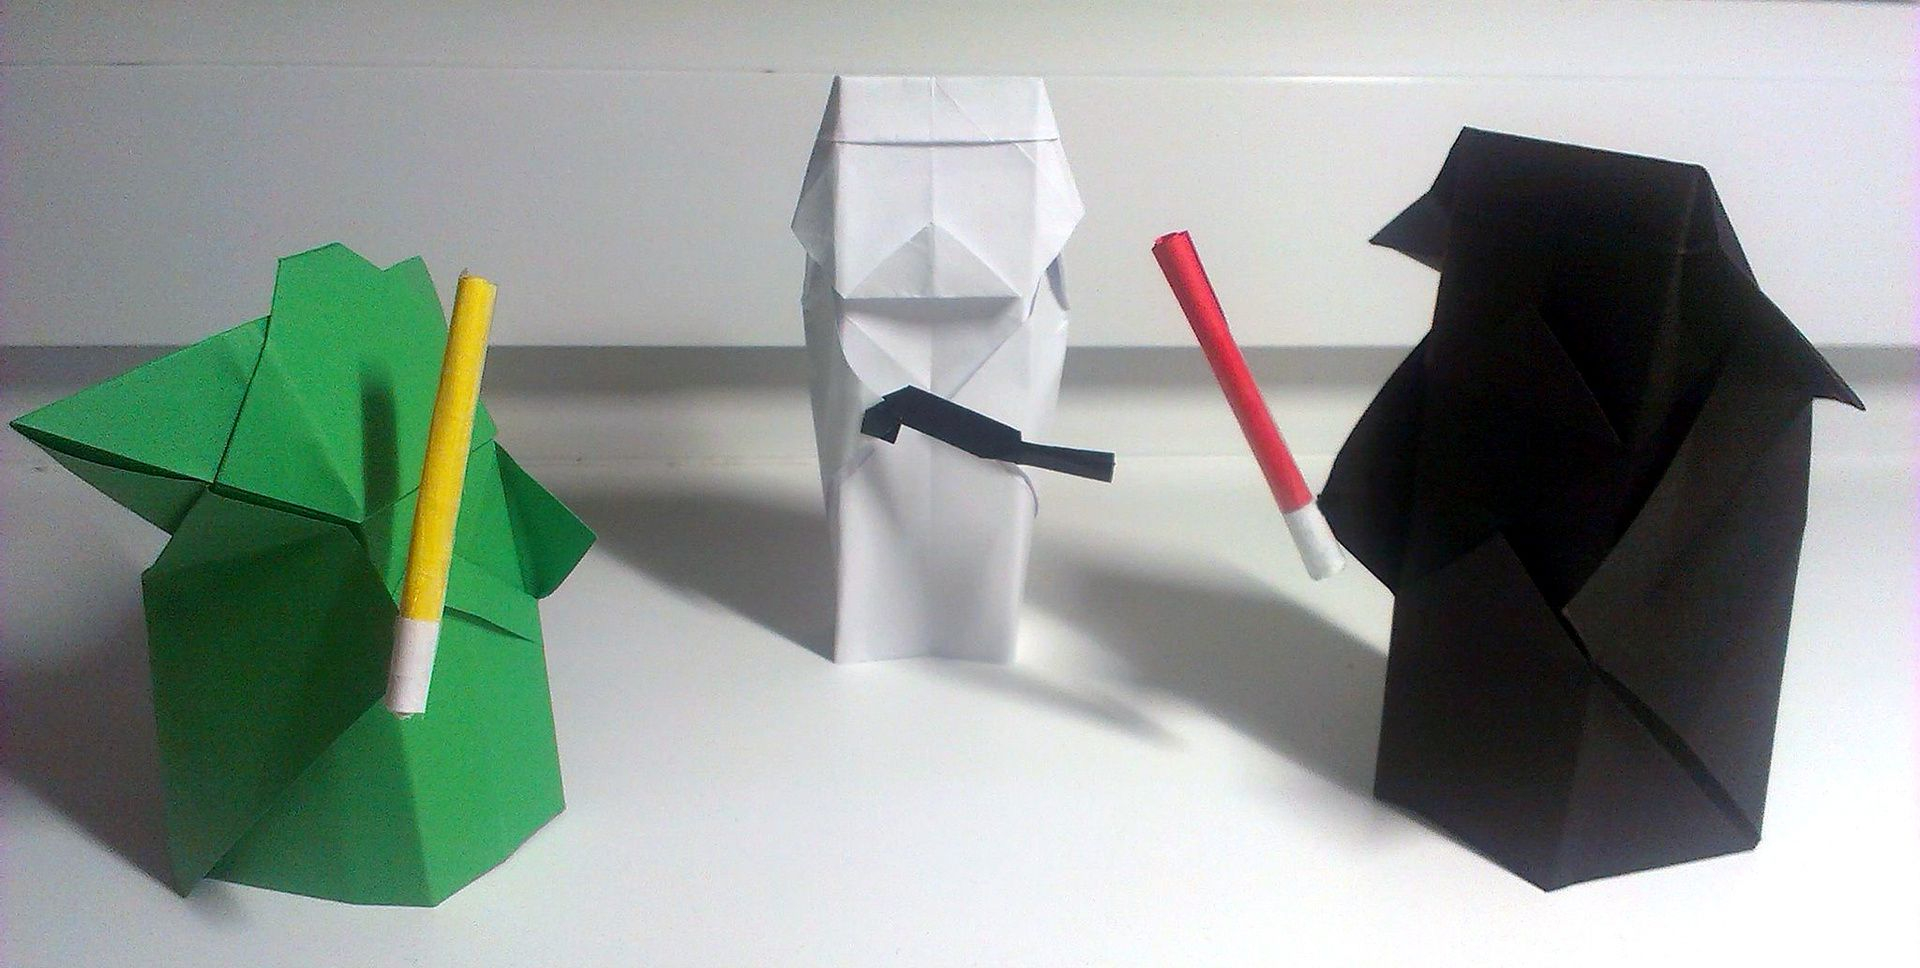 Origami Star Wars Characters Origami Star Wars Characters Yoda Darth Vader And A Stormtrooper